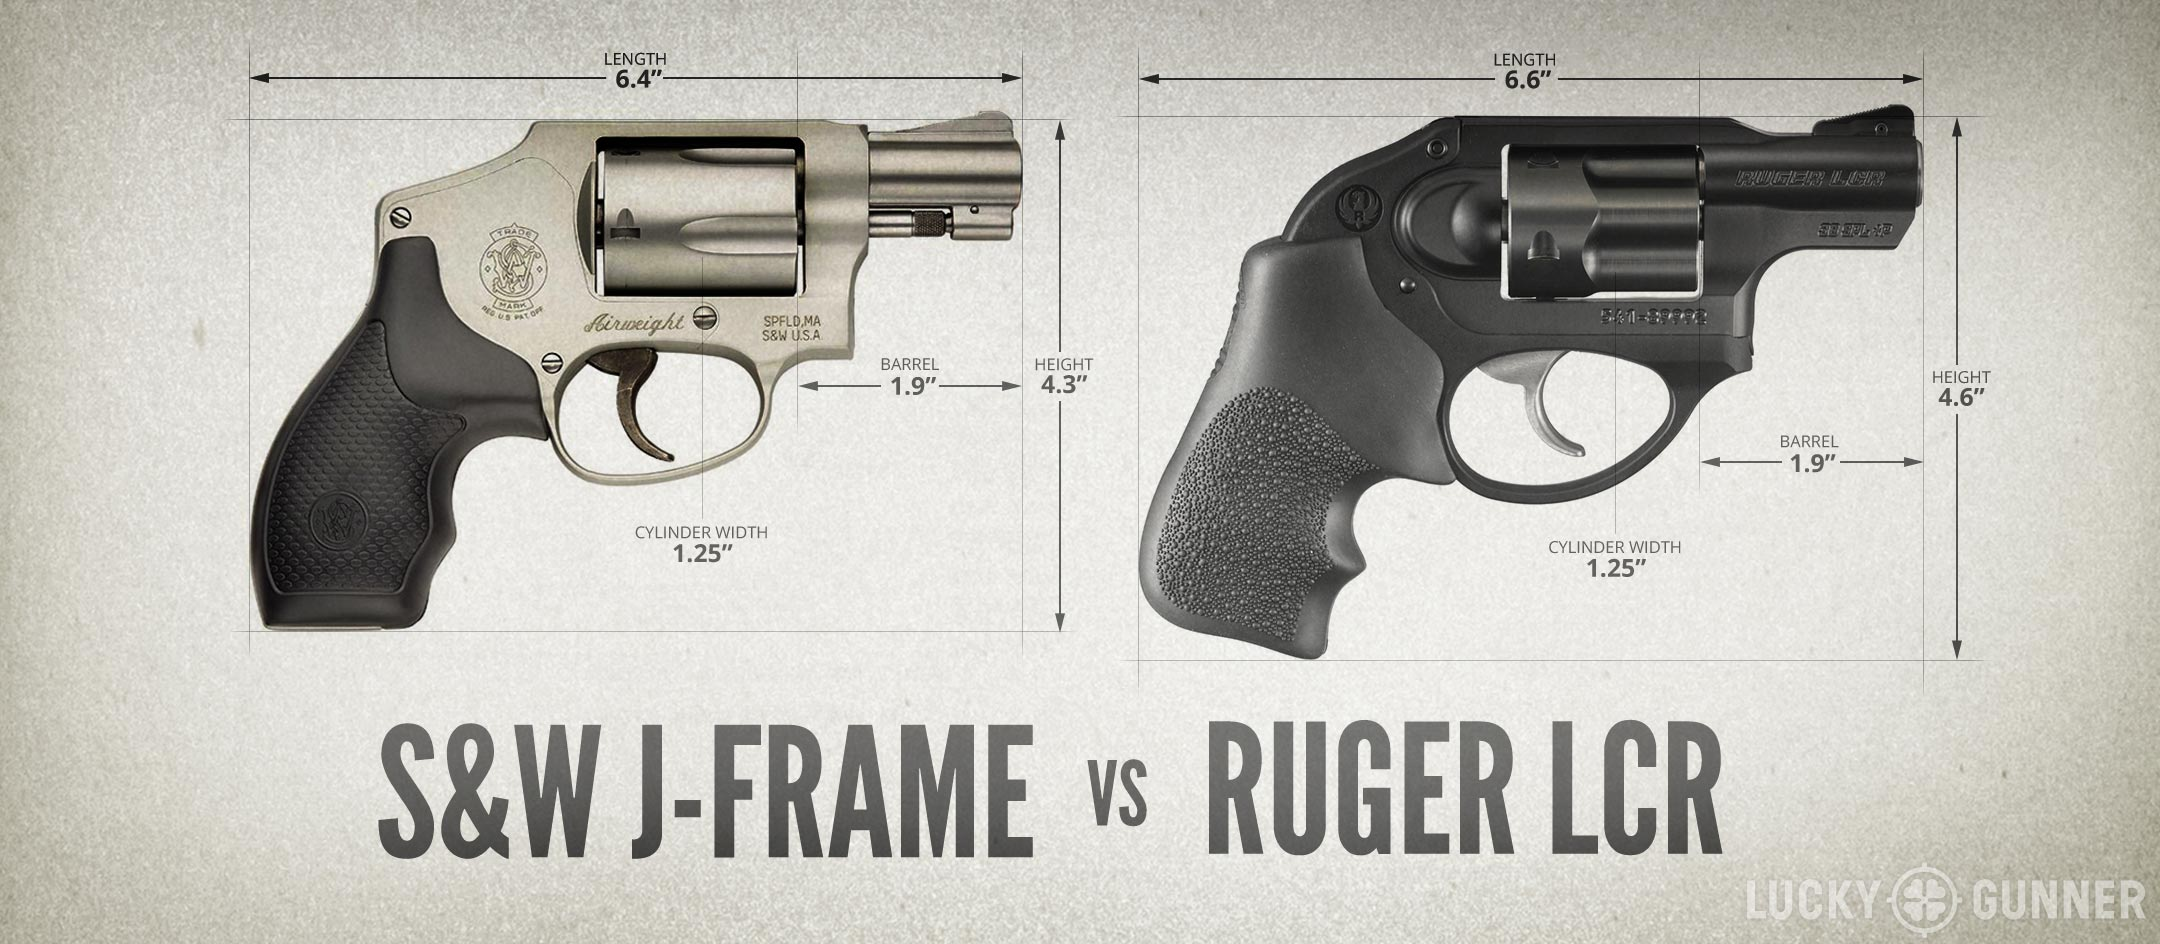 Smith & Wesson J-frame versus Ruger LCR